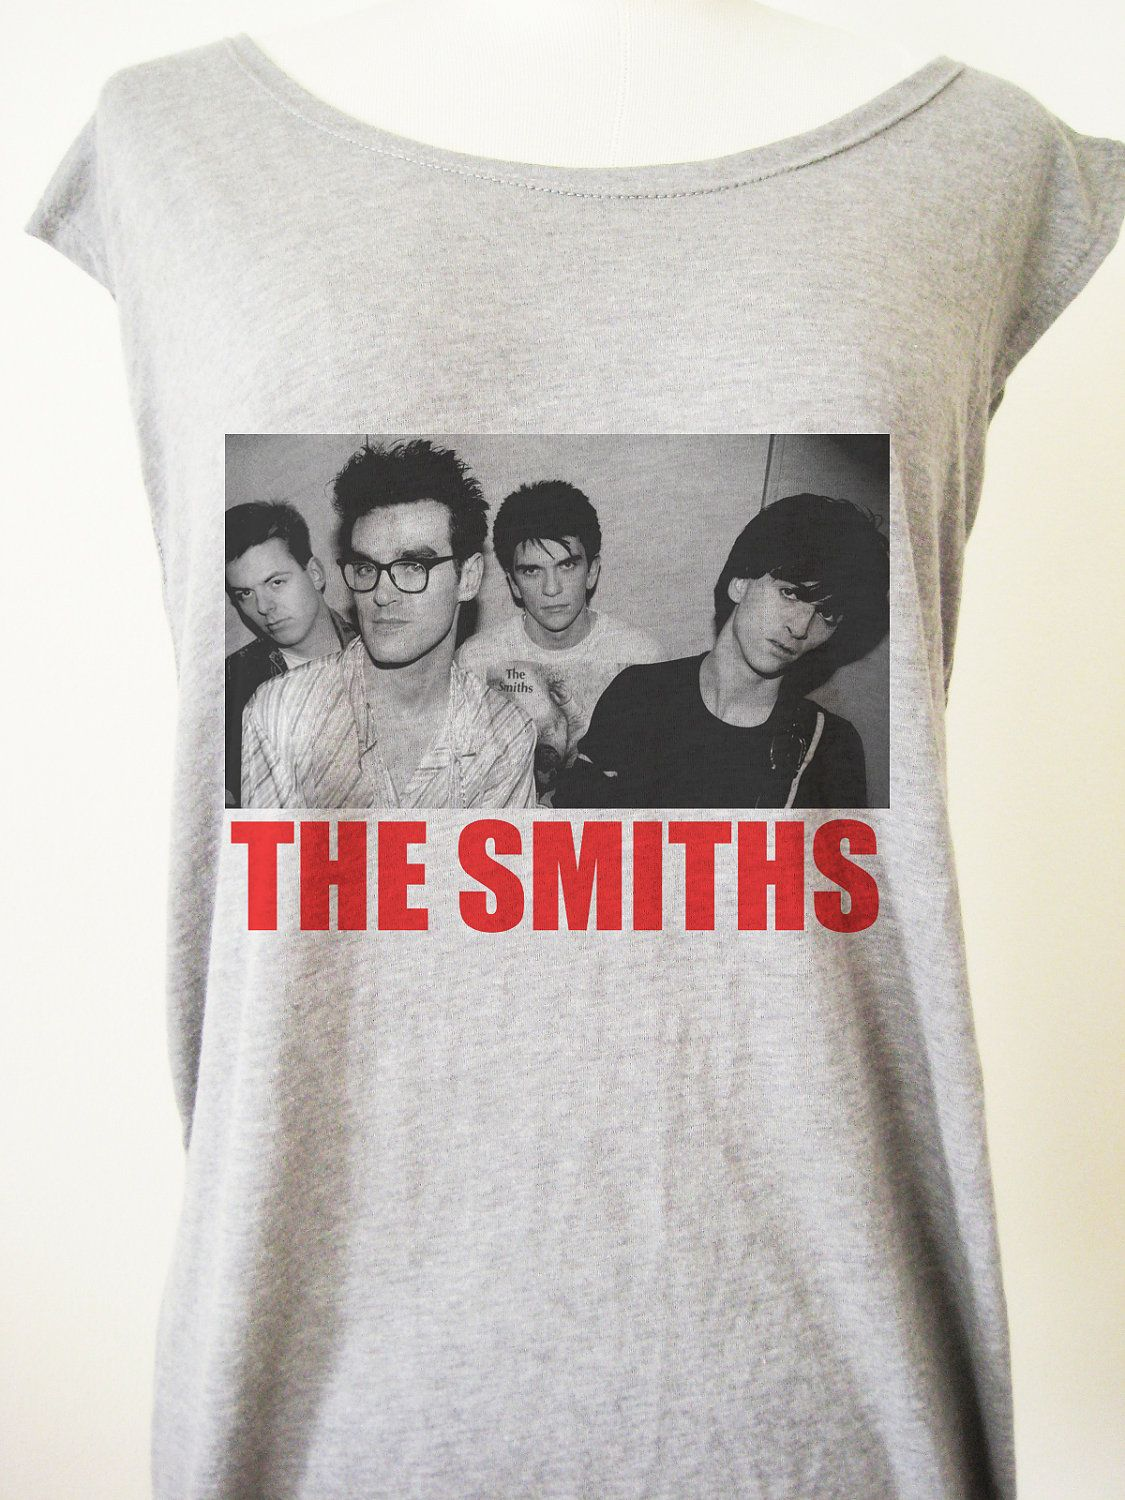 d926add94a7a0 Retro The Smiths Punk Rock T-Shirt Tee Tank Top Tunic Vintage Look One  Size.  8.00